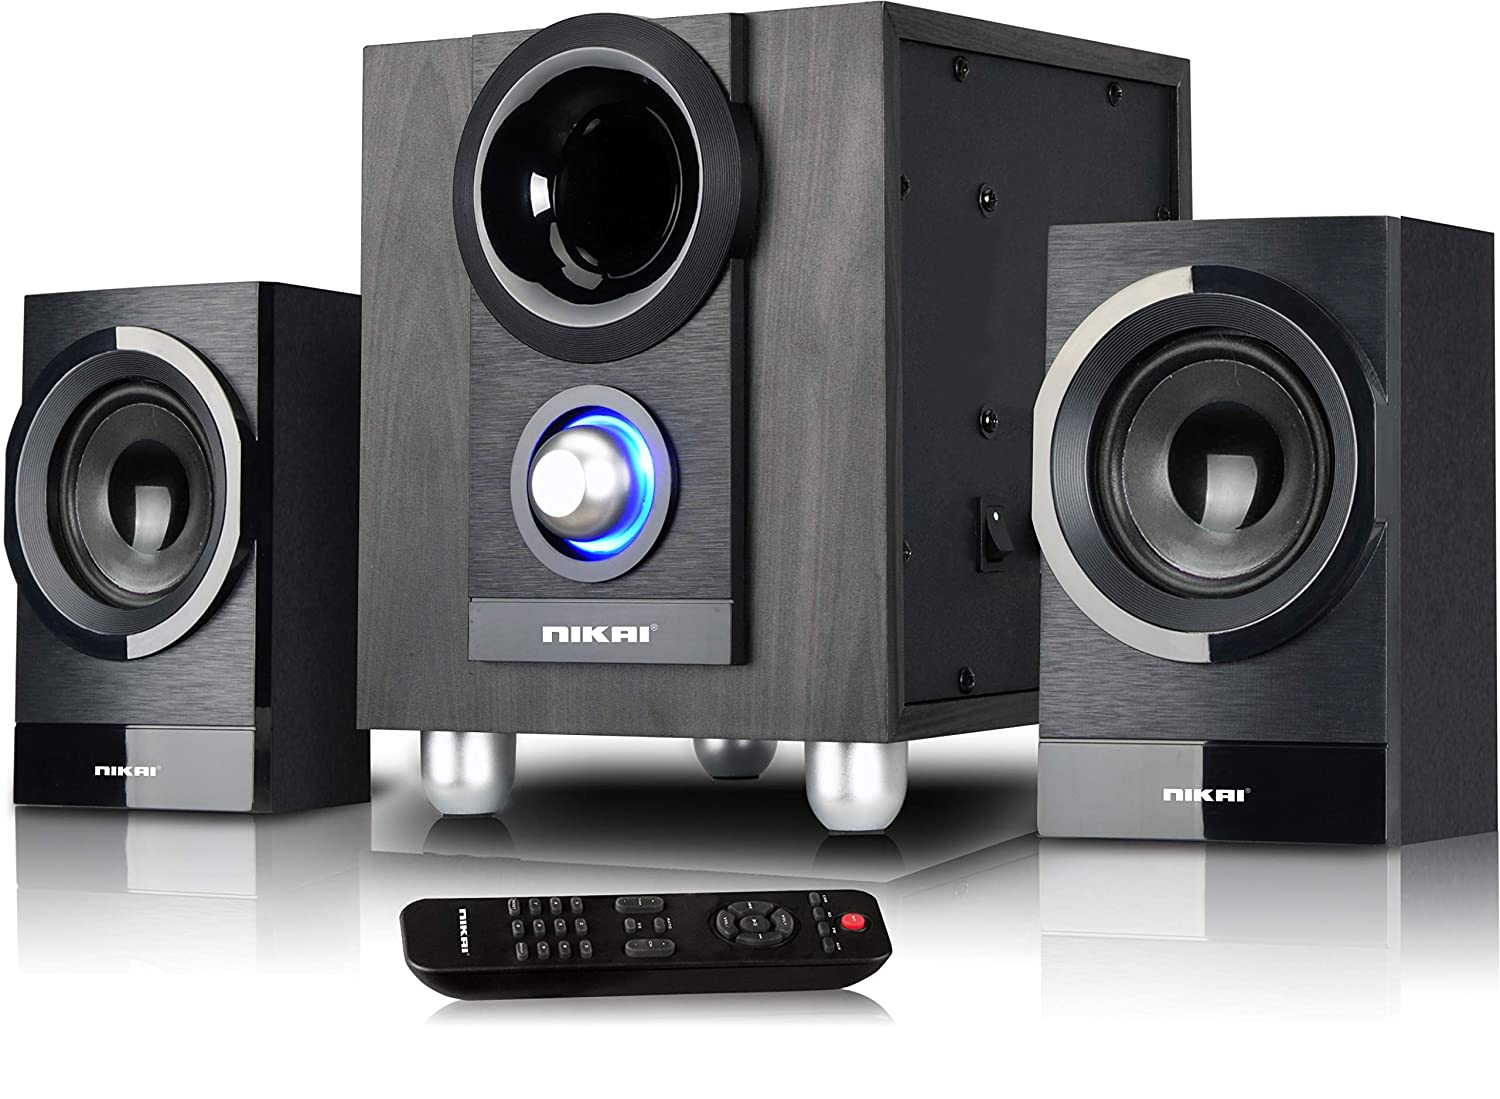 Nikai 2.1 Channel Home Theater